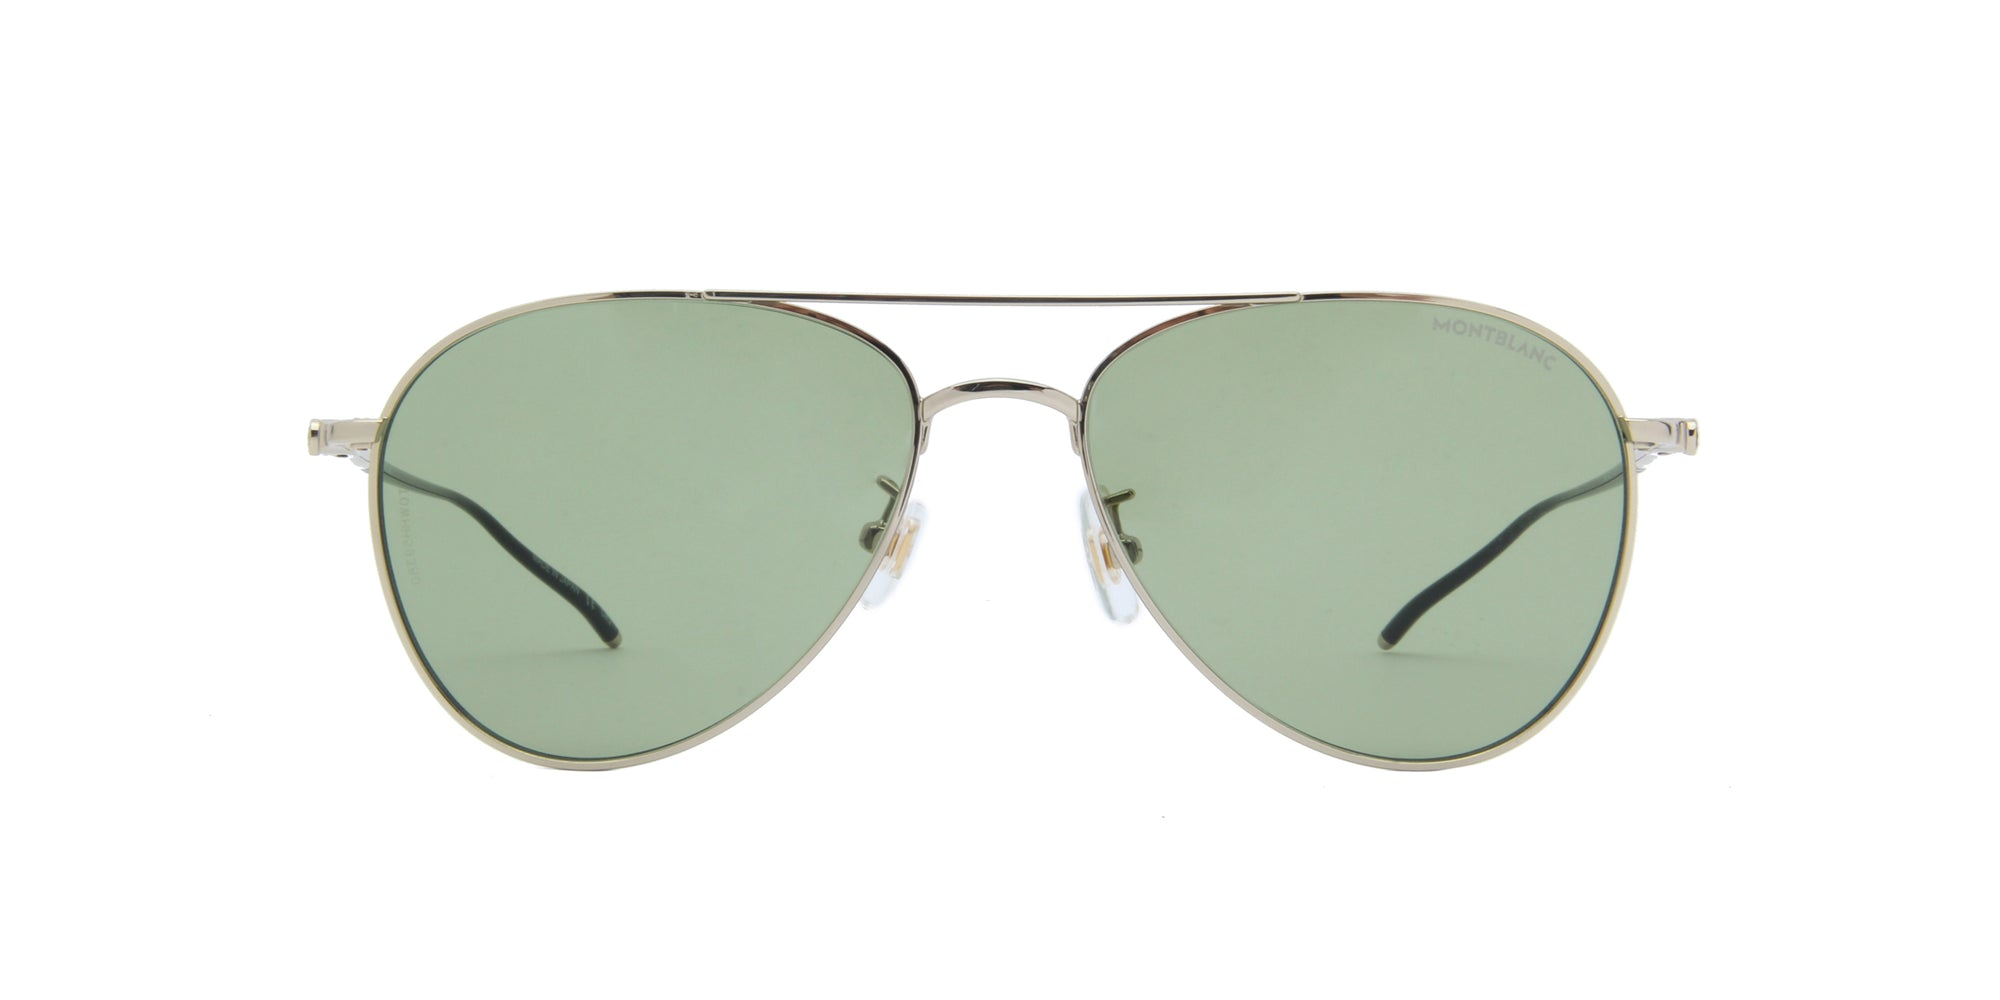 Montblanc - MB0128S Shiny Light Gold/Solid Green Aviator Men Sunglasses - 58mm